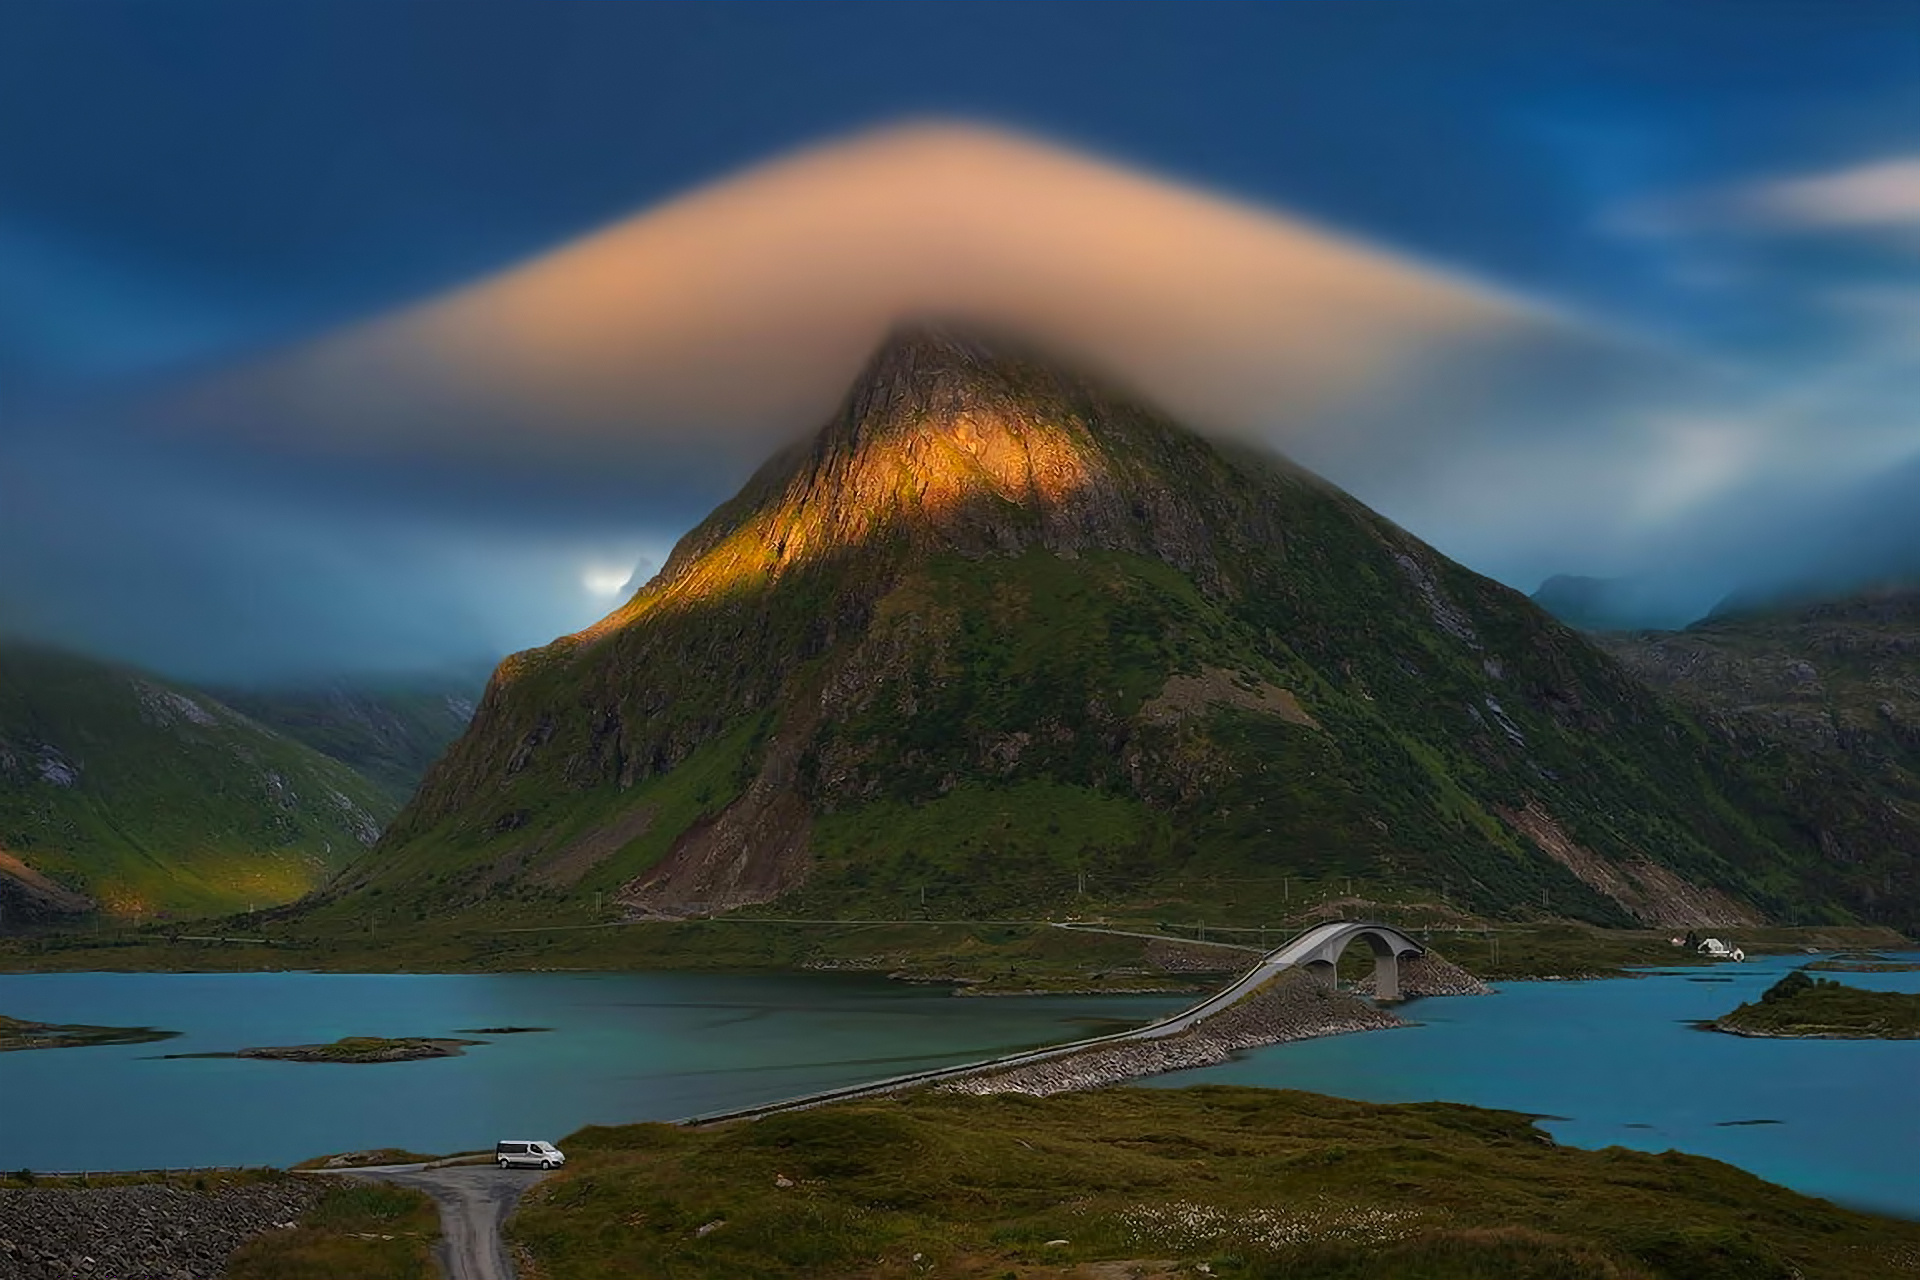 Most Inspiring Wallpaper Mountain Cloud - Landscape-Mountain-Cloud-River-Wallpaper-1920x1280  Pic_797974.jpg